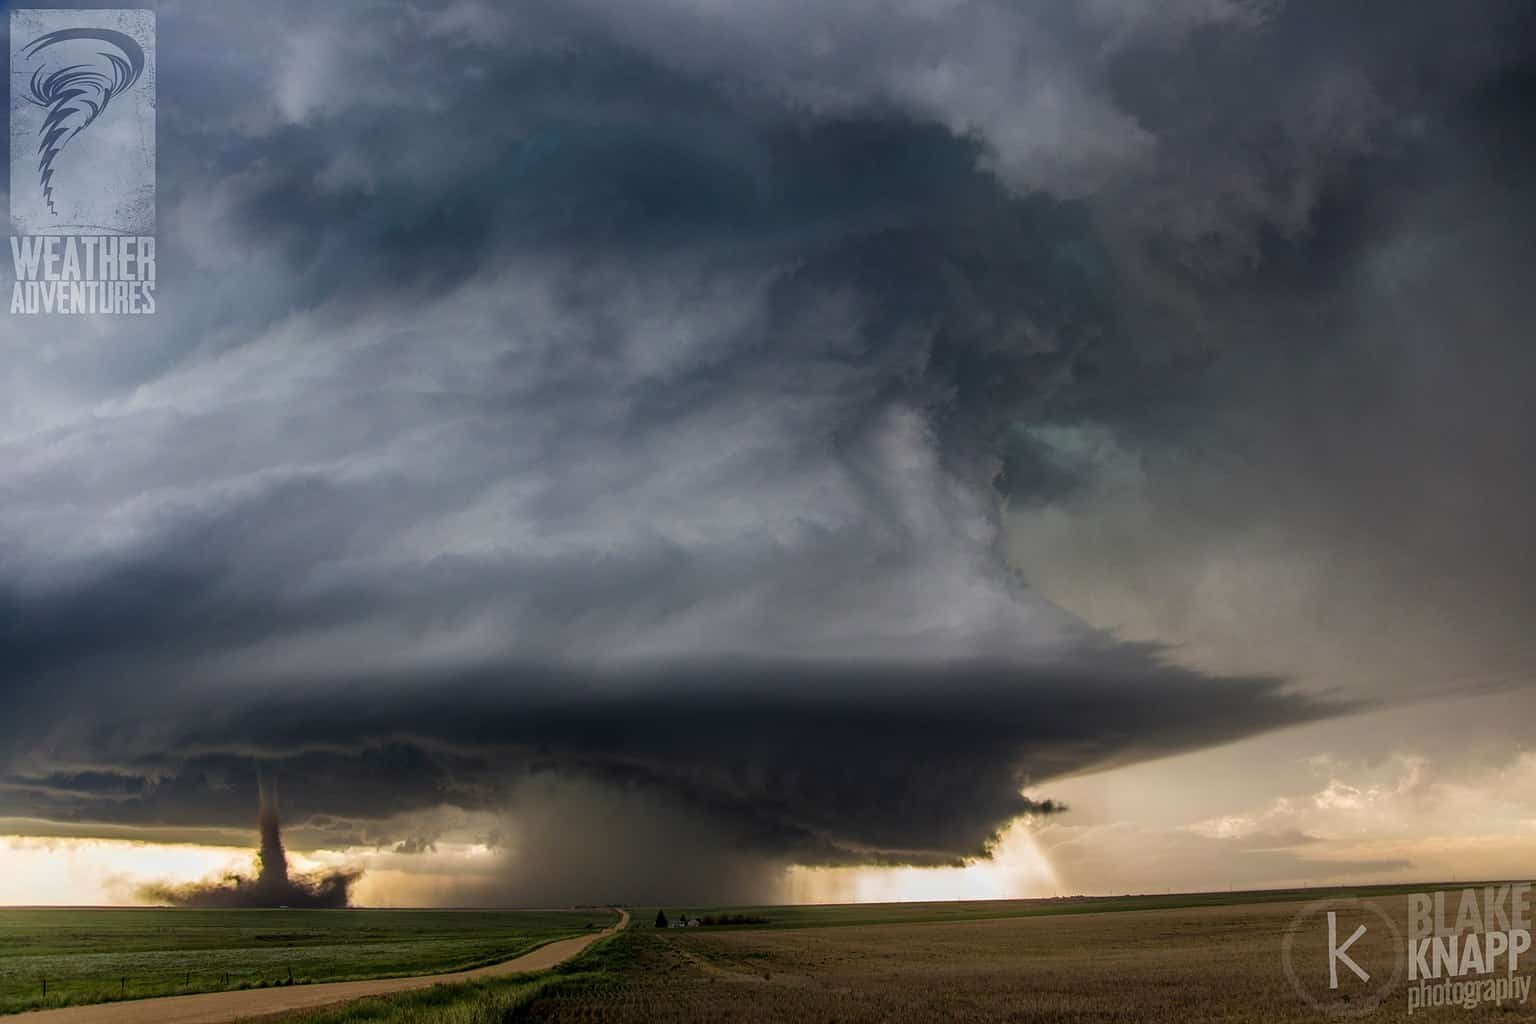 This shot is dedicated to all the chasers who can appreciate why this is just inherently awesome... Especially Colt Forney Lauren Forney Jimmy SmartRick Smart Ryan Sandberg Karl Hircock Olivier Vortex John Cafasso Shari Howe Wingate Matt Grans and Dave Holder